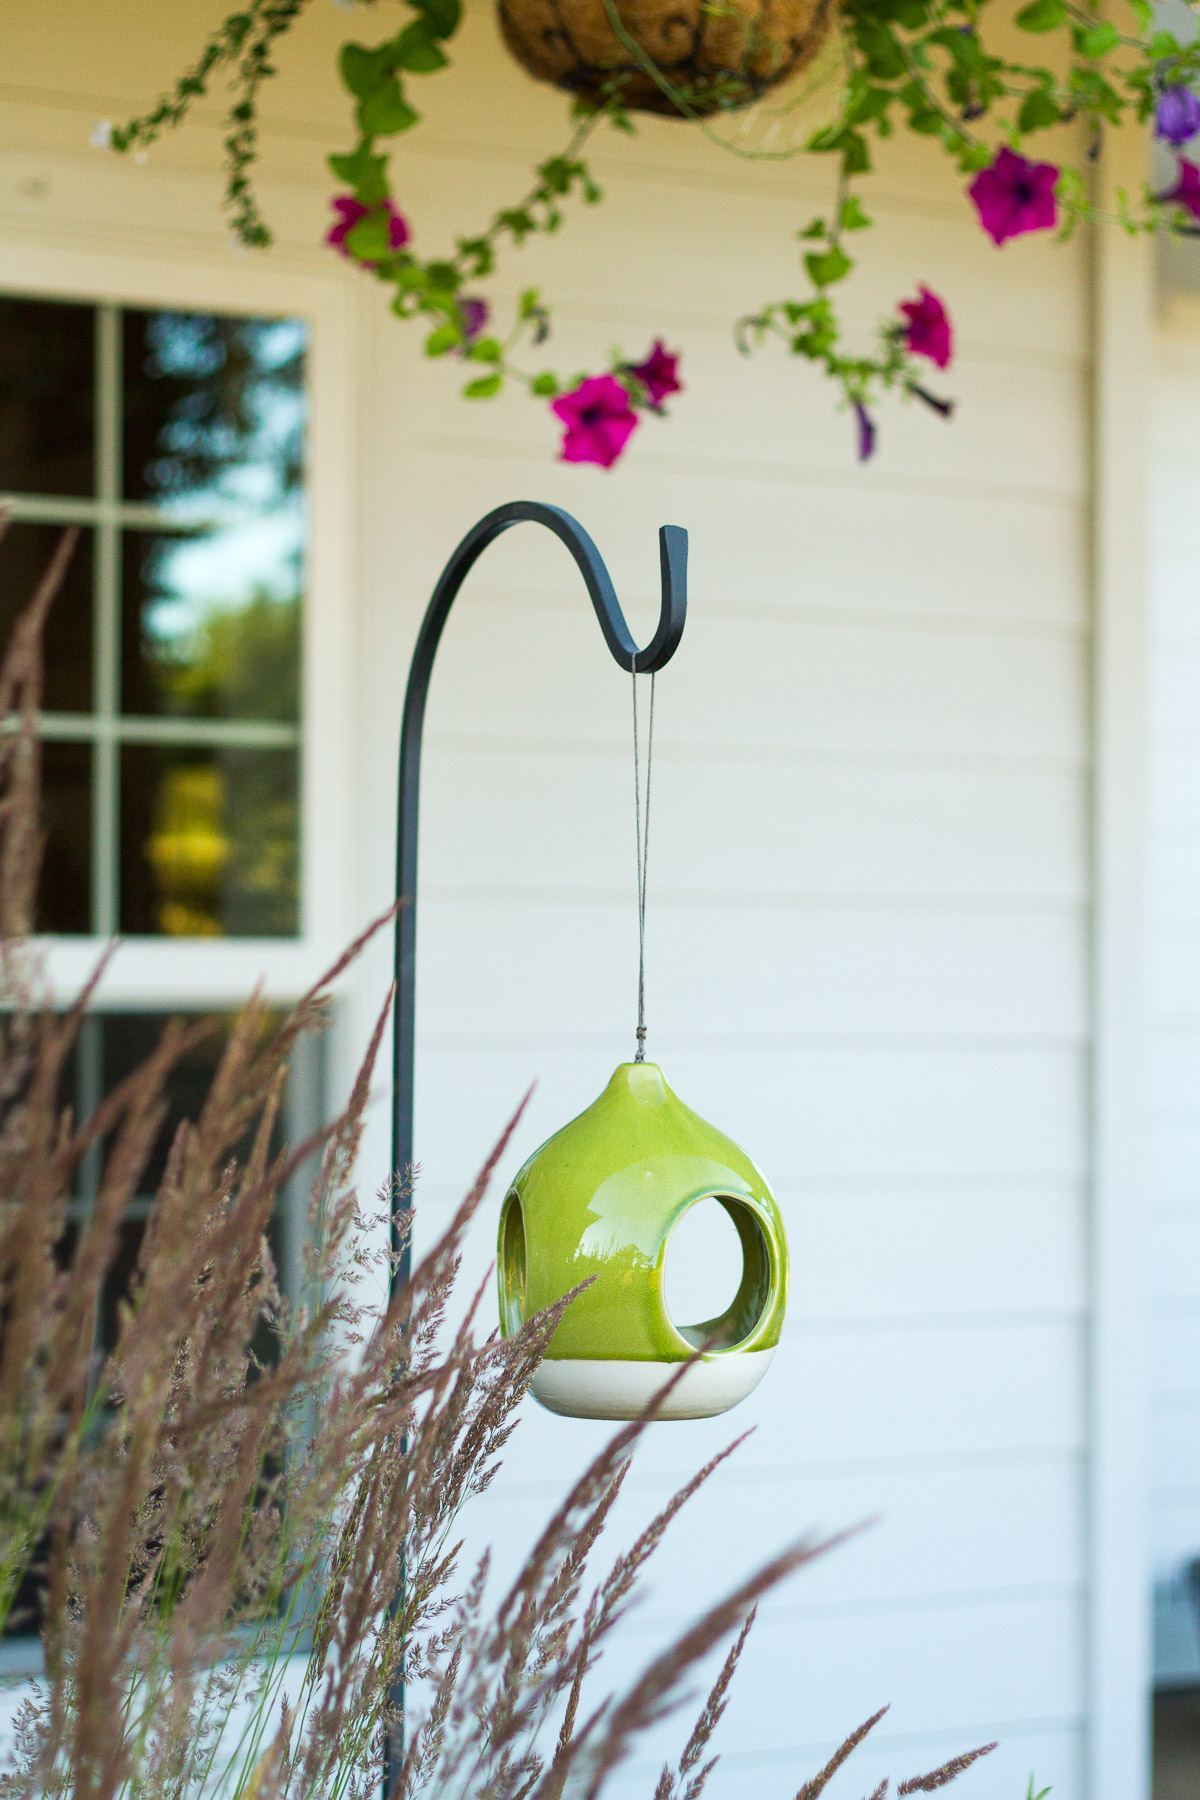 clay bird feeder in front yard landscape design